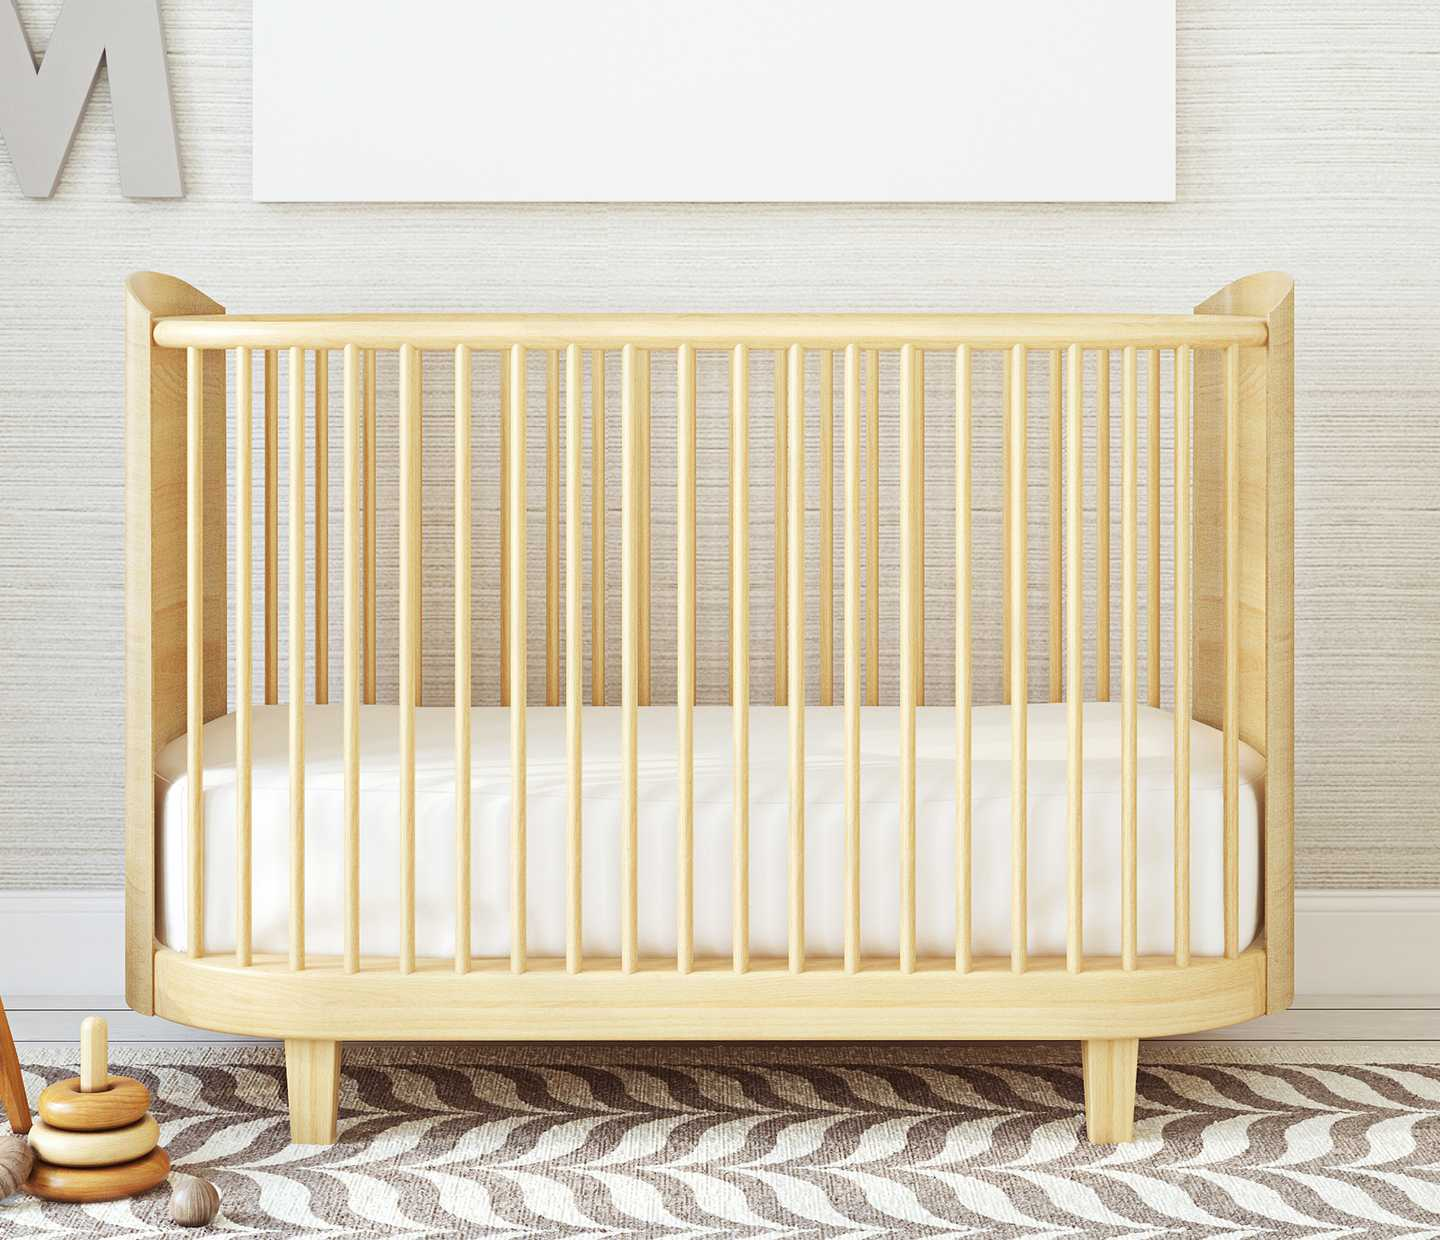 Wooden crib with patterned rug